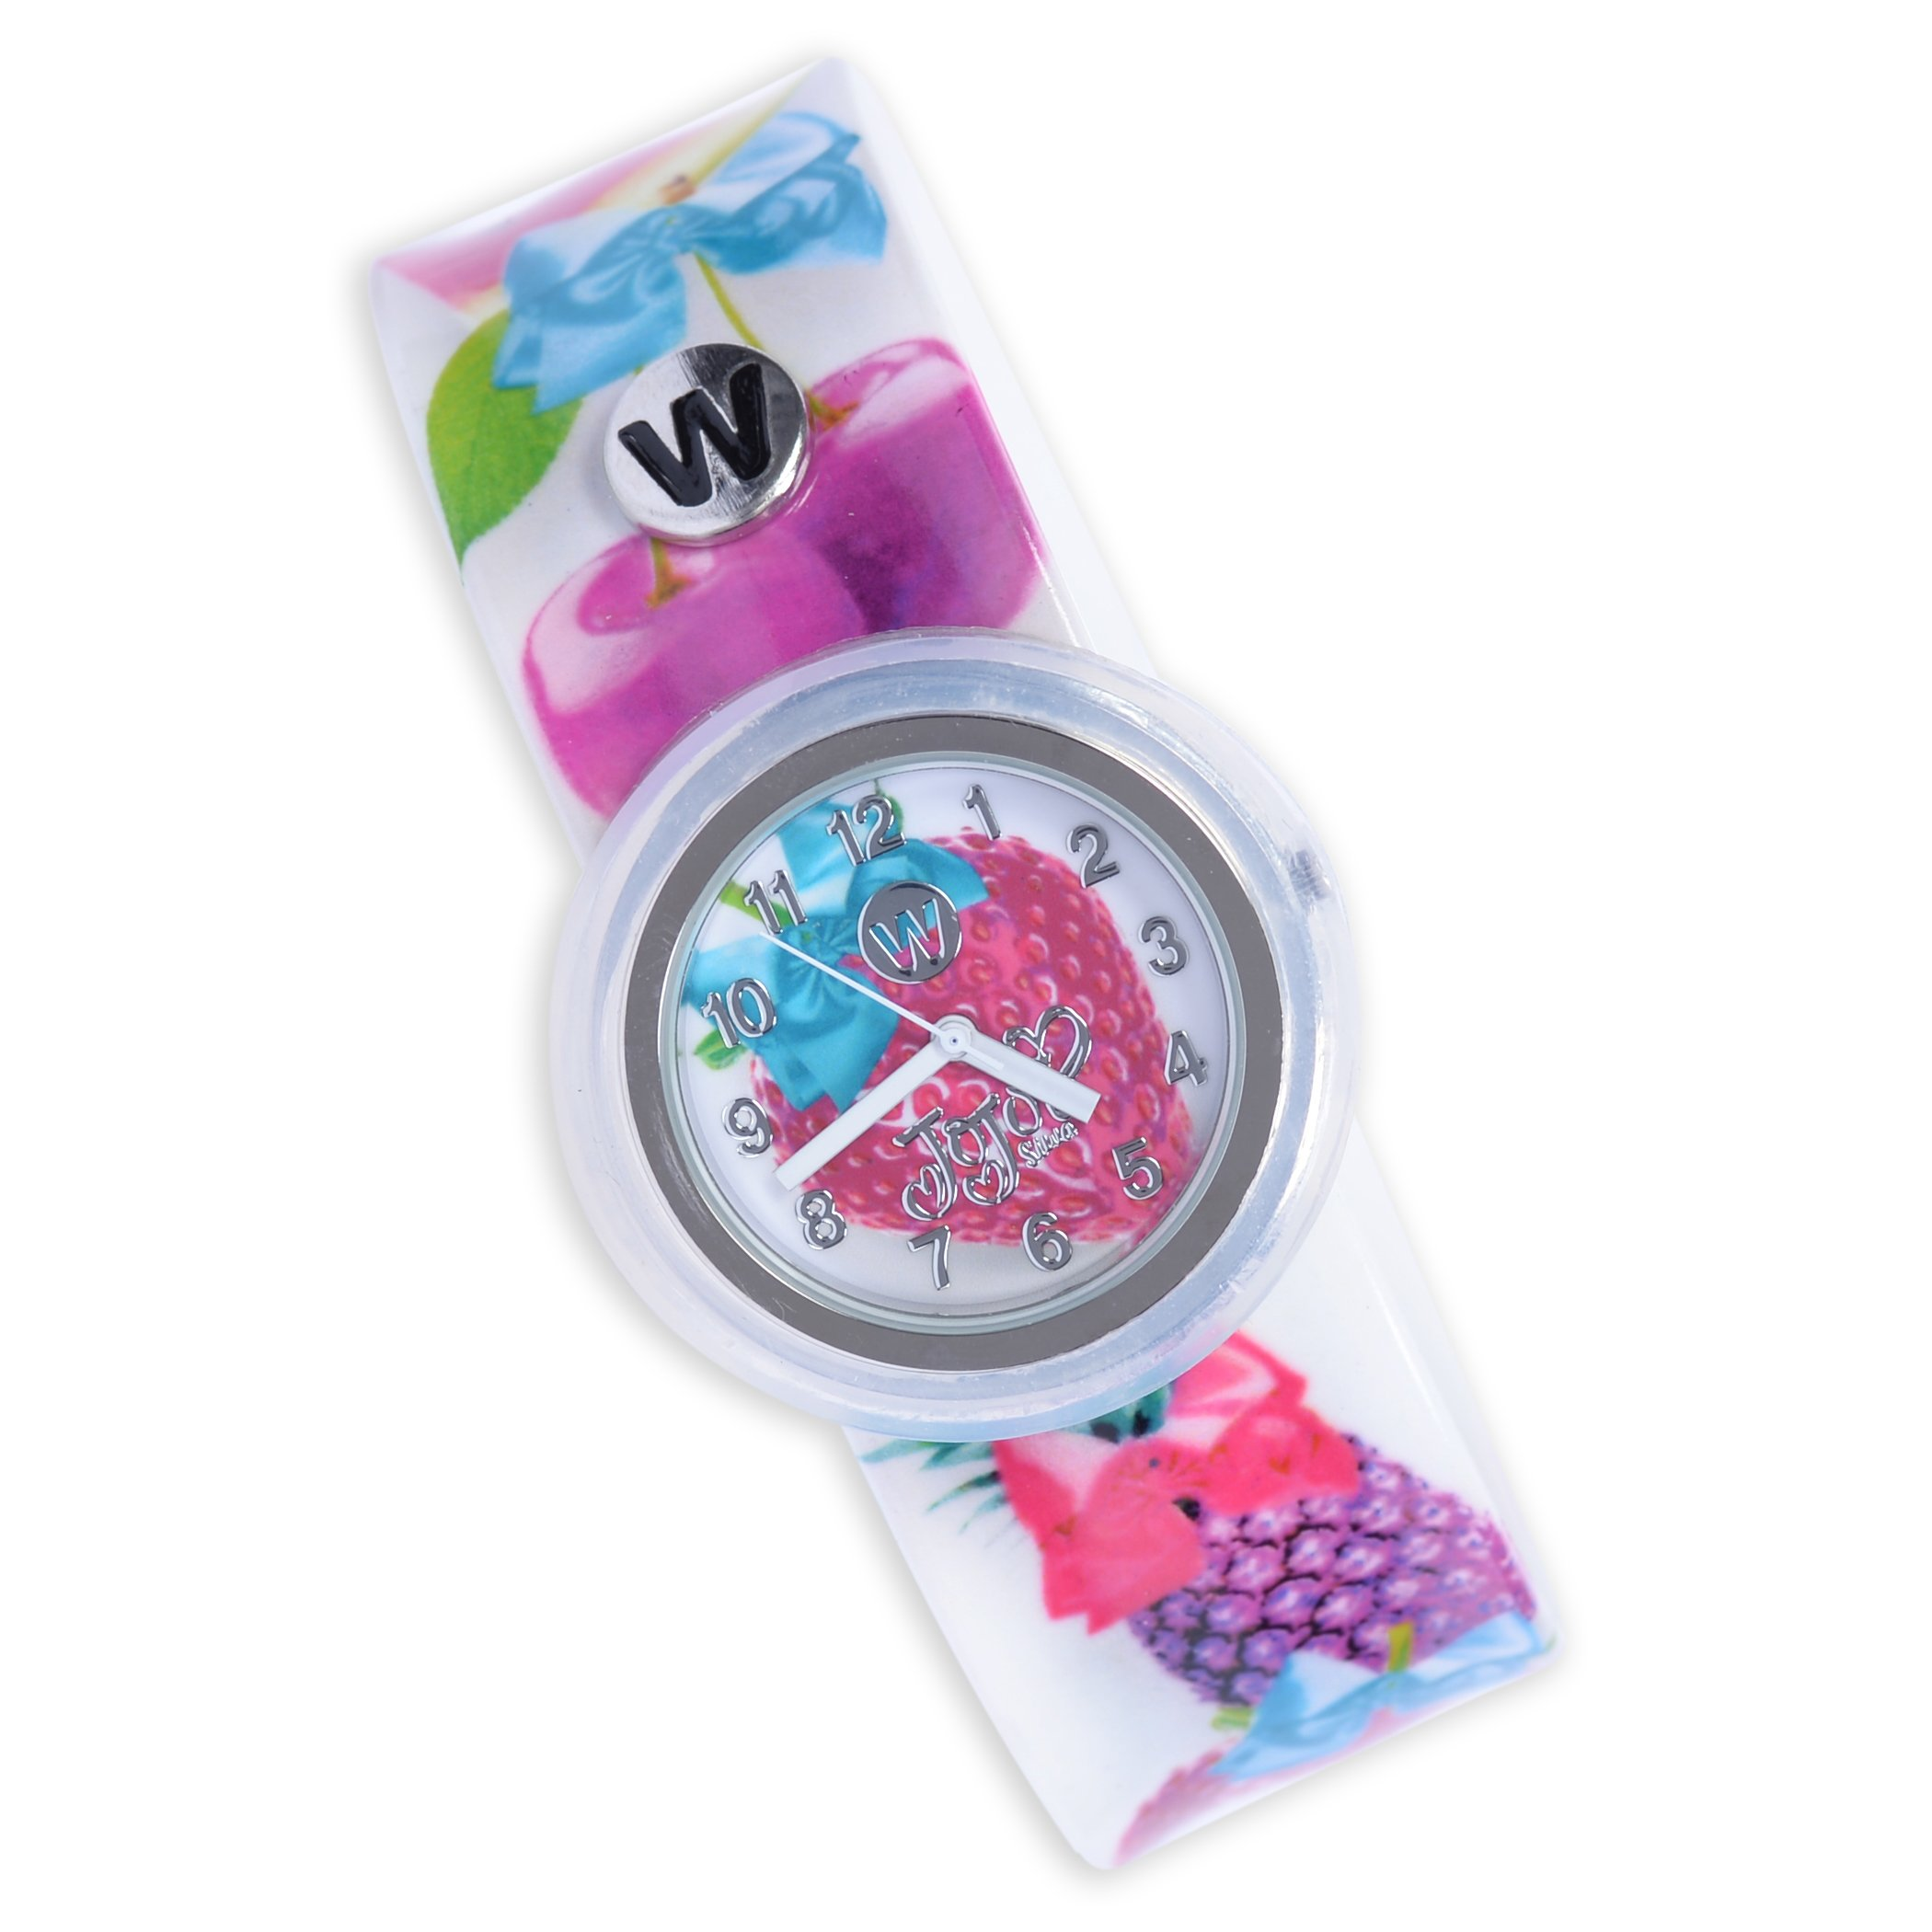 JoJo Siwa - Watchitude Slap Watch (Fun and Fruity)